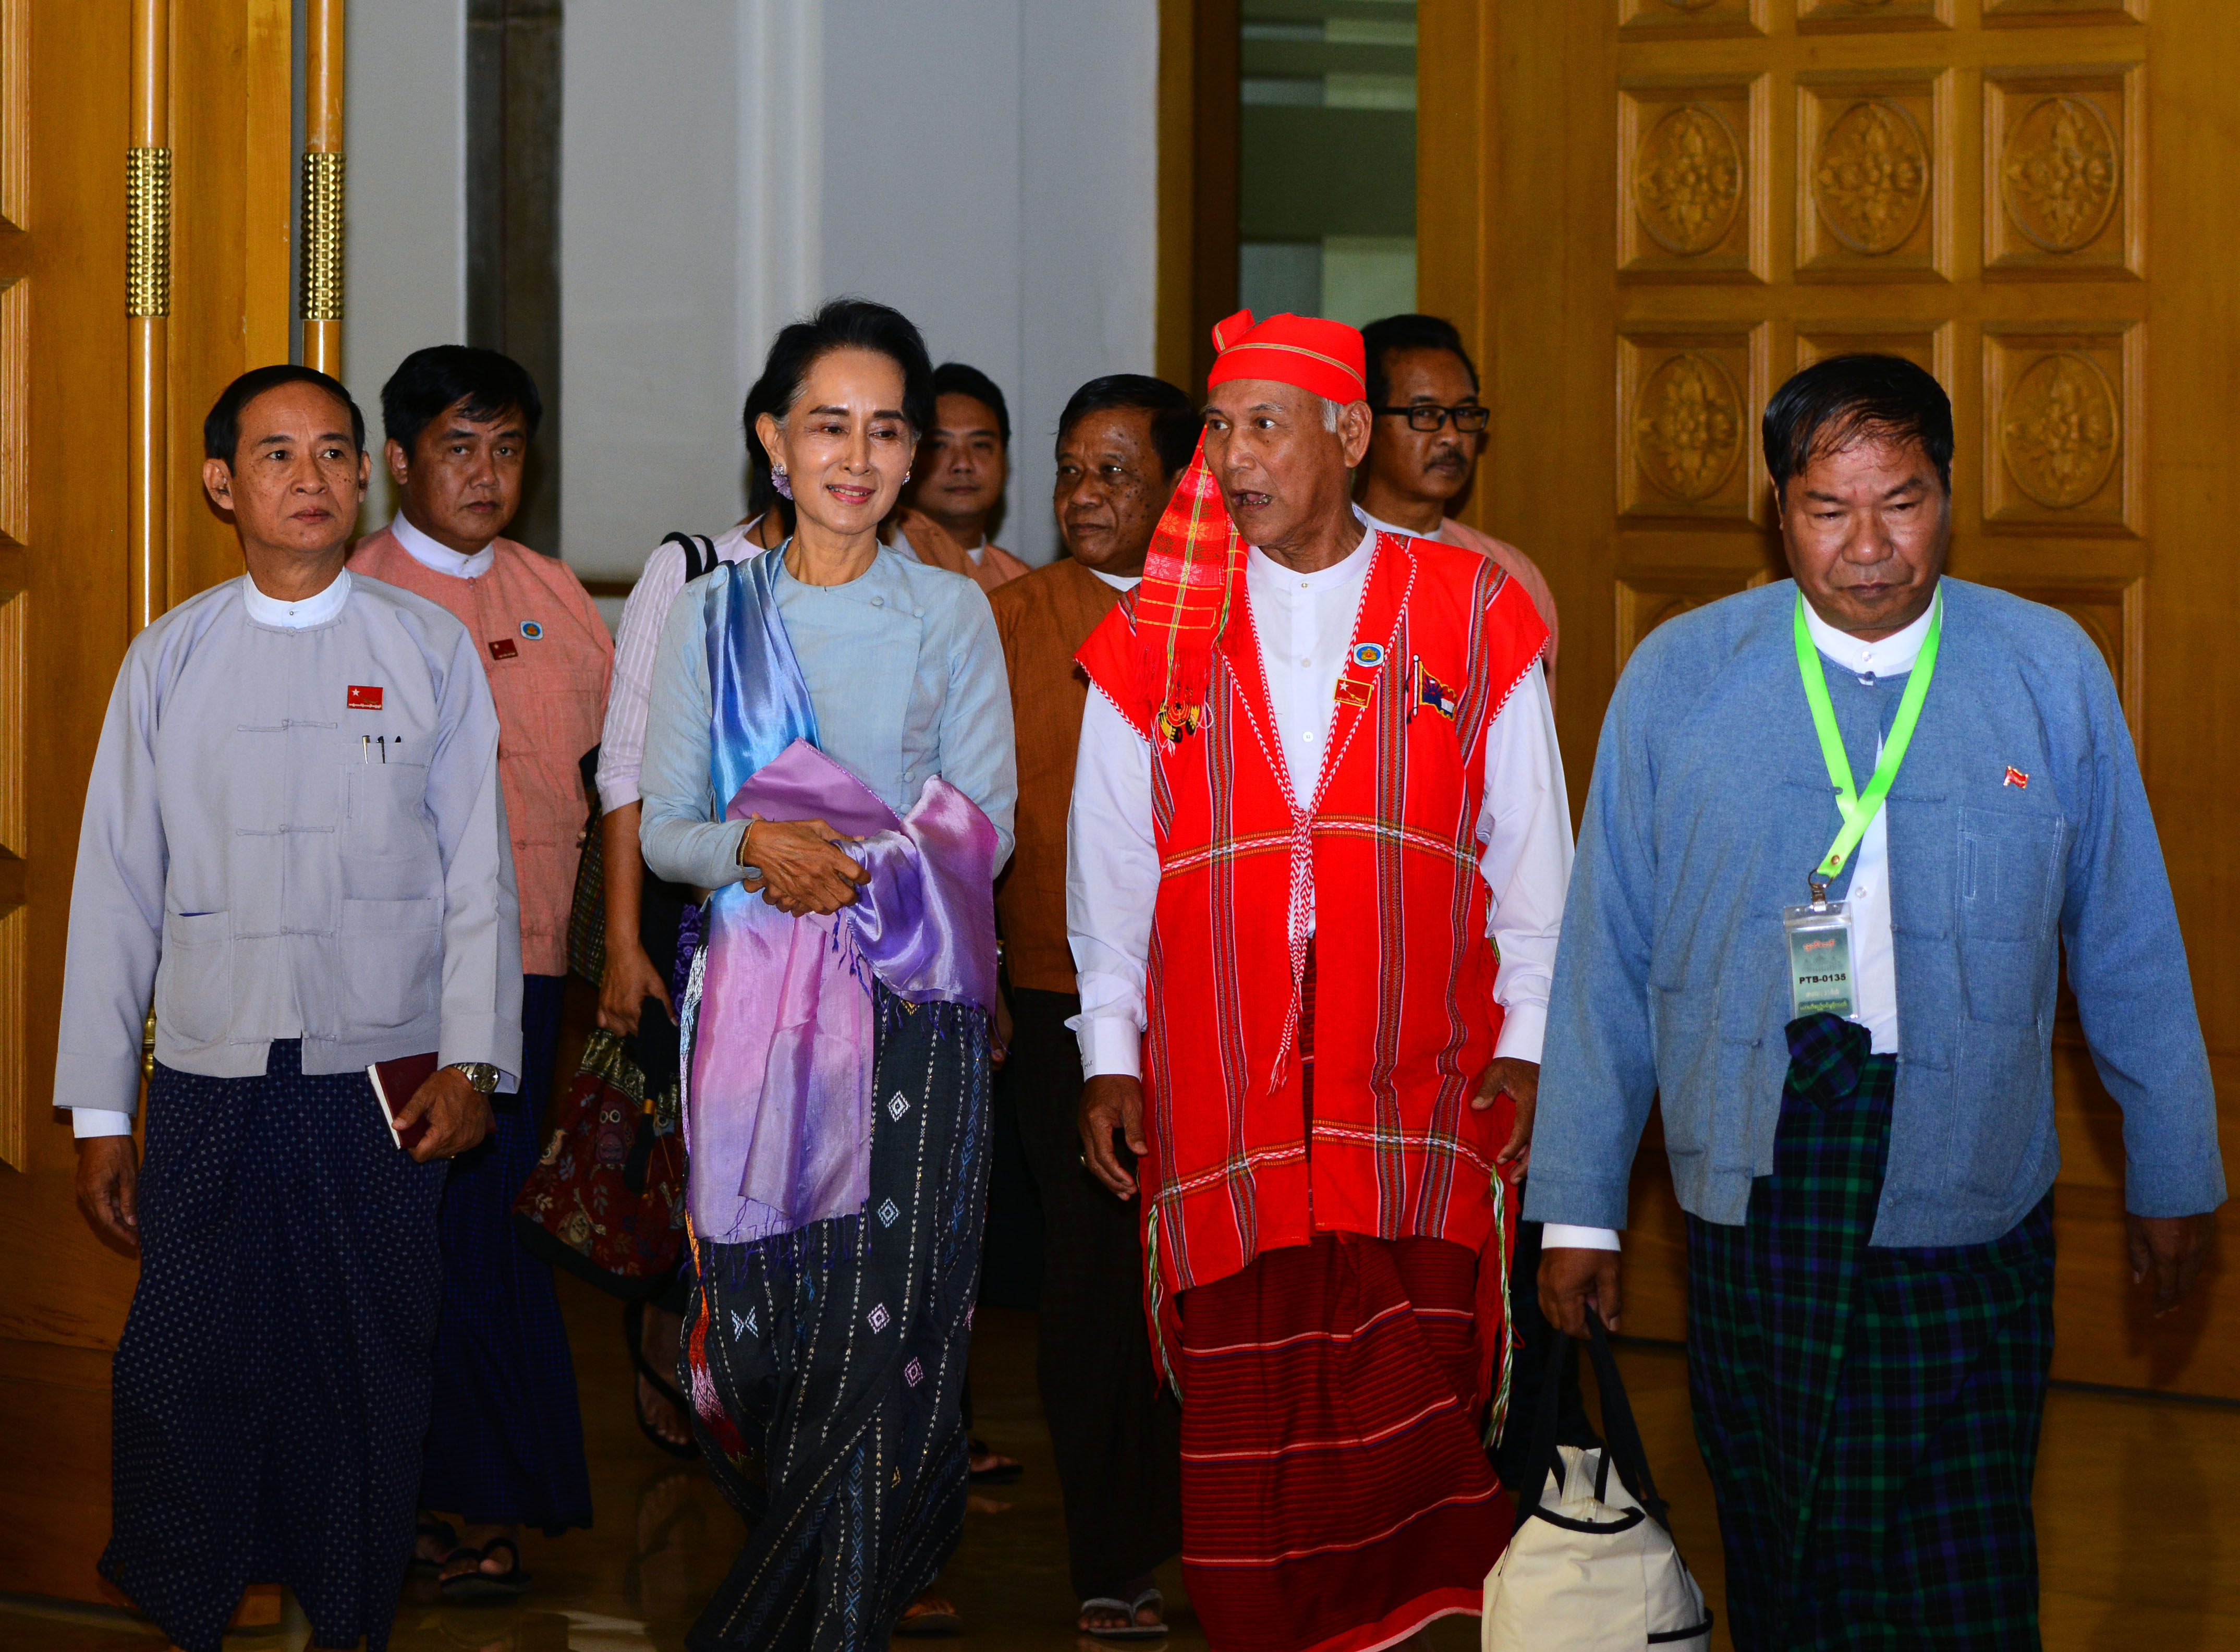 Myanmar opposition leader Aung San Suu Kyi, second from left, walks with members of her National League for Democracy party upon their arrival to attend regular session of the parliament's Lower House in Naypyitaw, Myanmar, Dec 1, 2015.